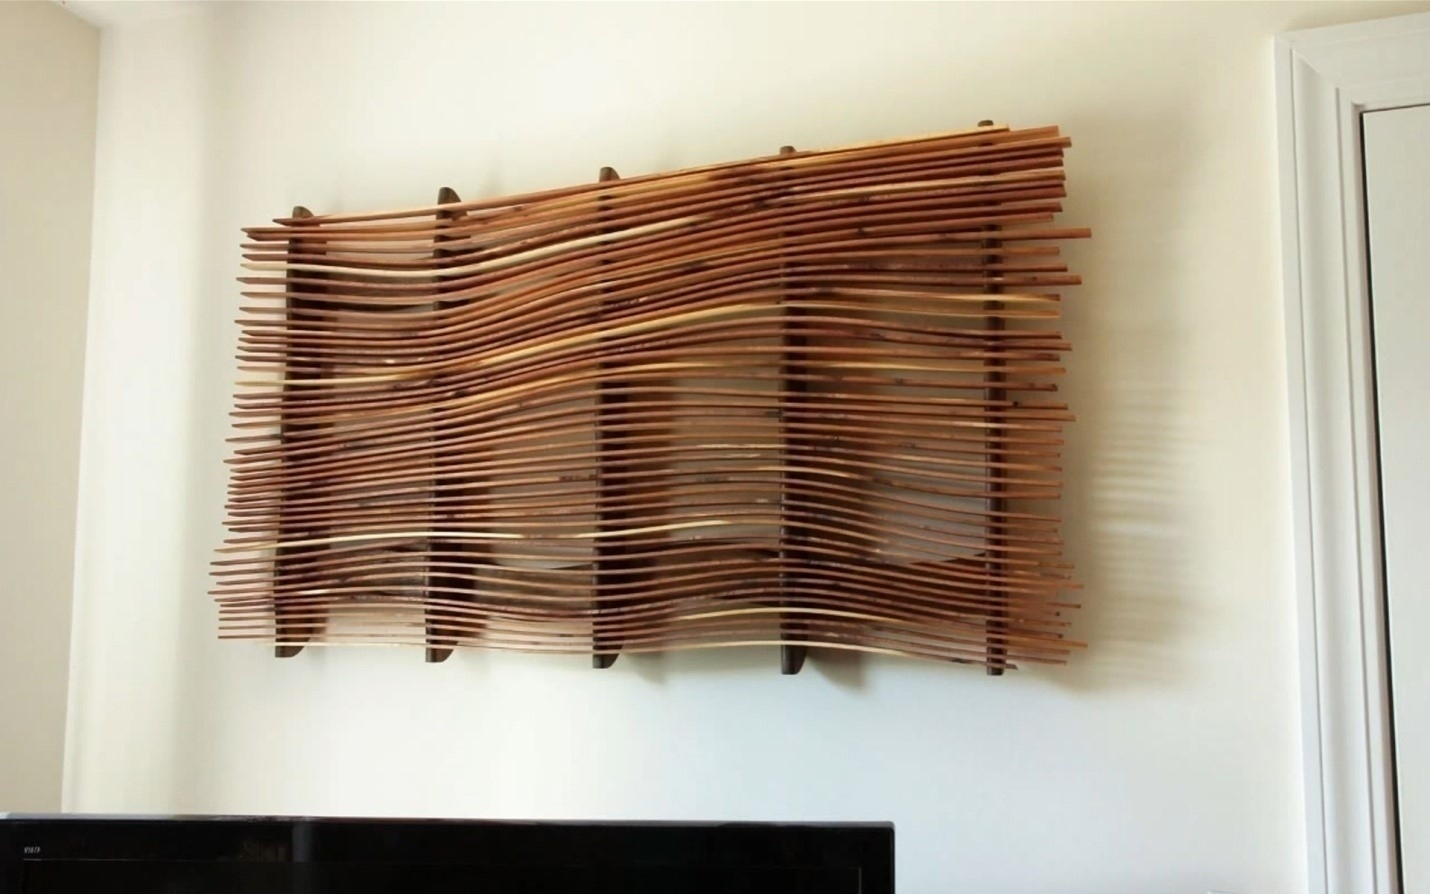 How To Make Wall Art From Scrap Wood | Diy Project – Cut The Wood Throughout Recent Diy Wood Wall Art (View 7 of 20)